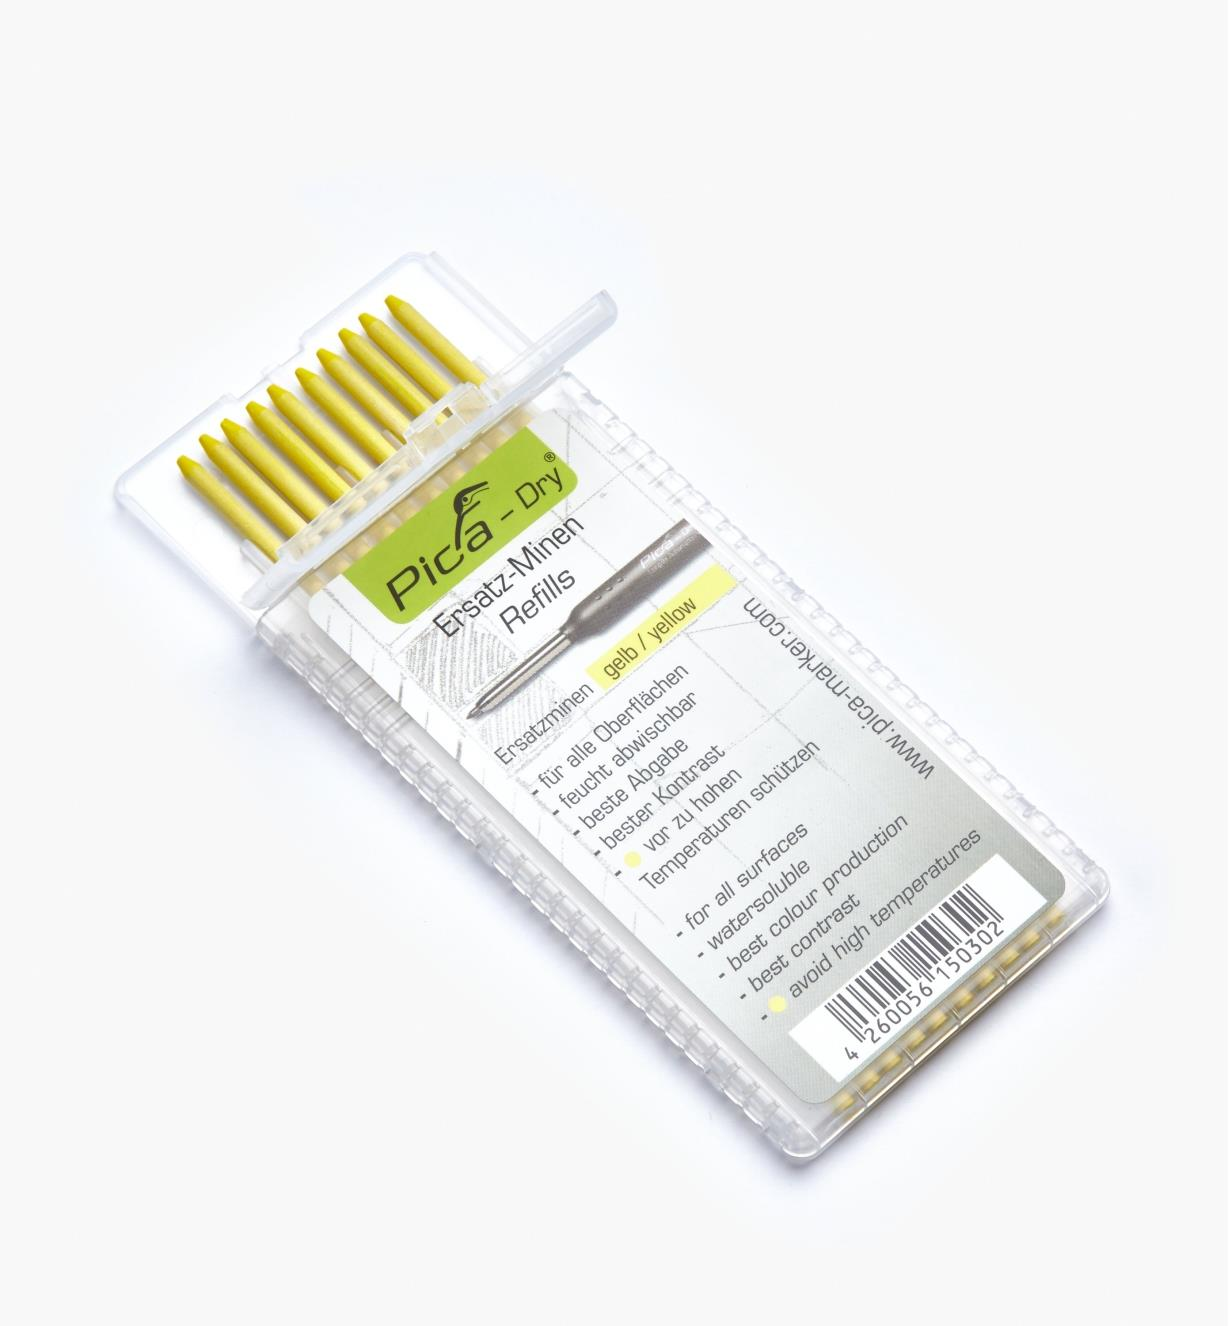 25K0412 - Pica-Dry Yellow Water-Soluble 2B Leads, pkg. of 10